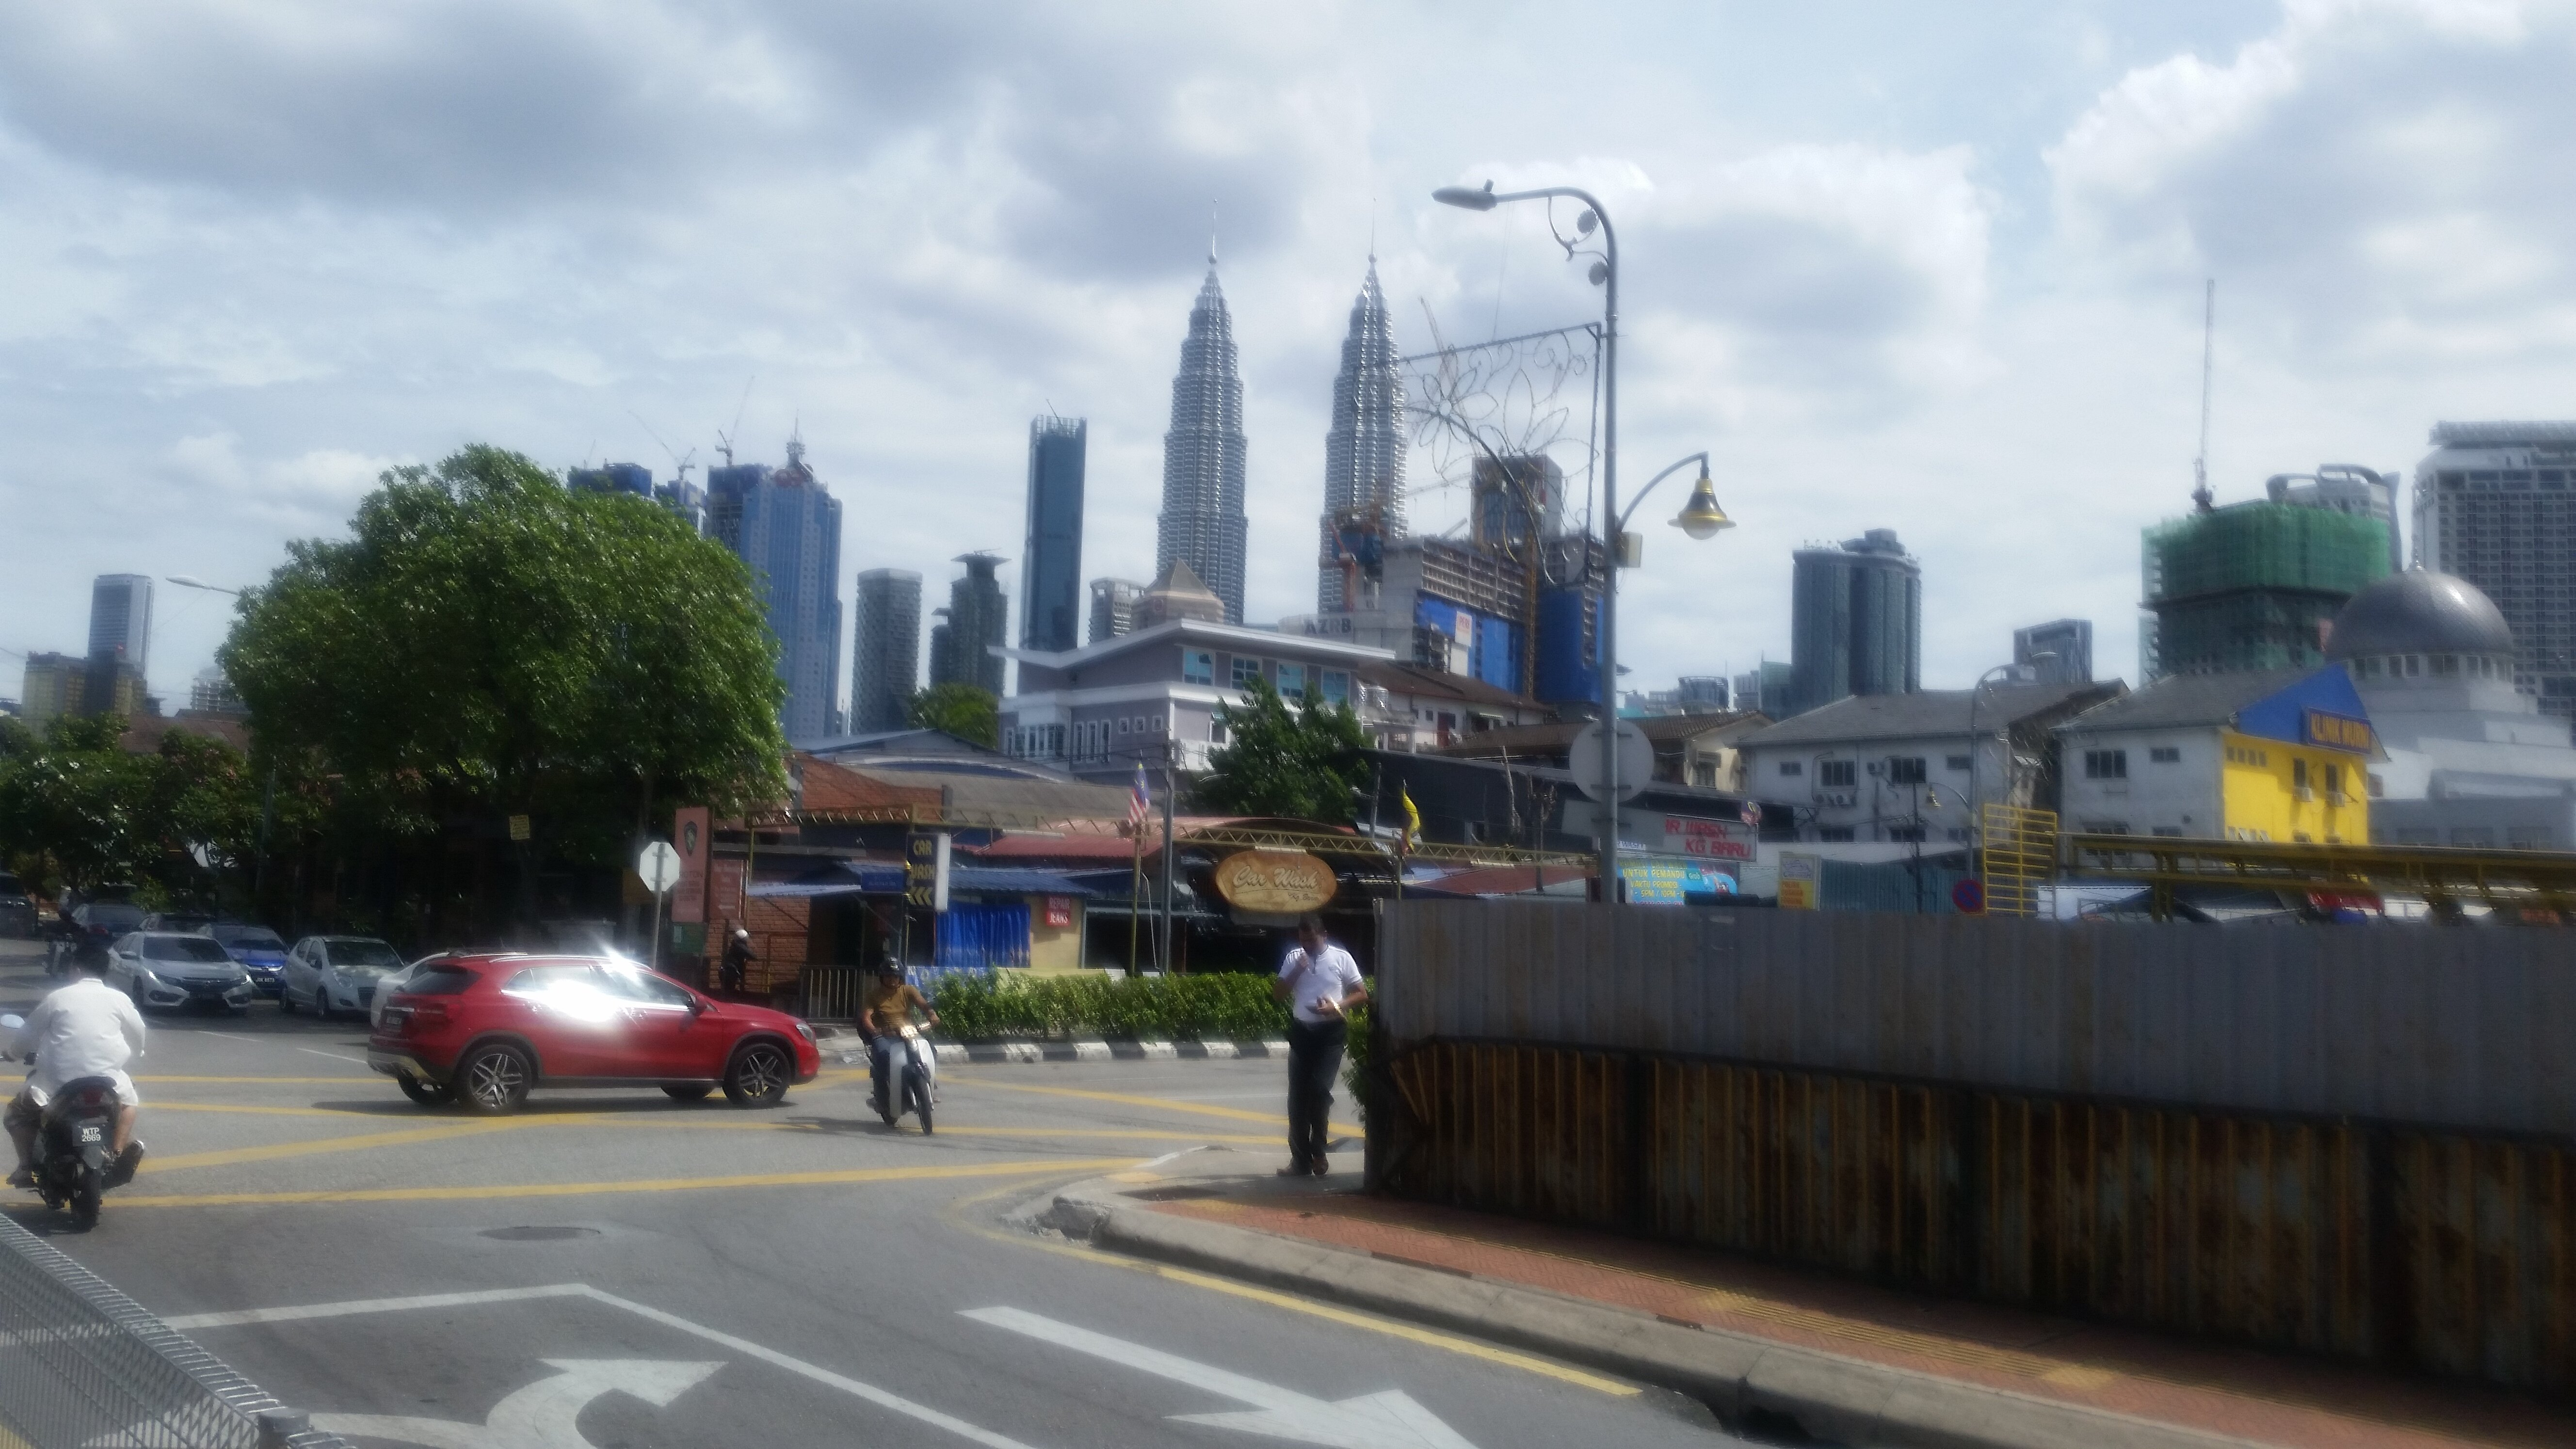 The Petronas Towers from afar.